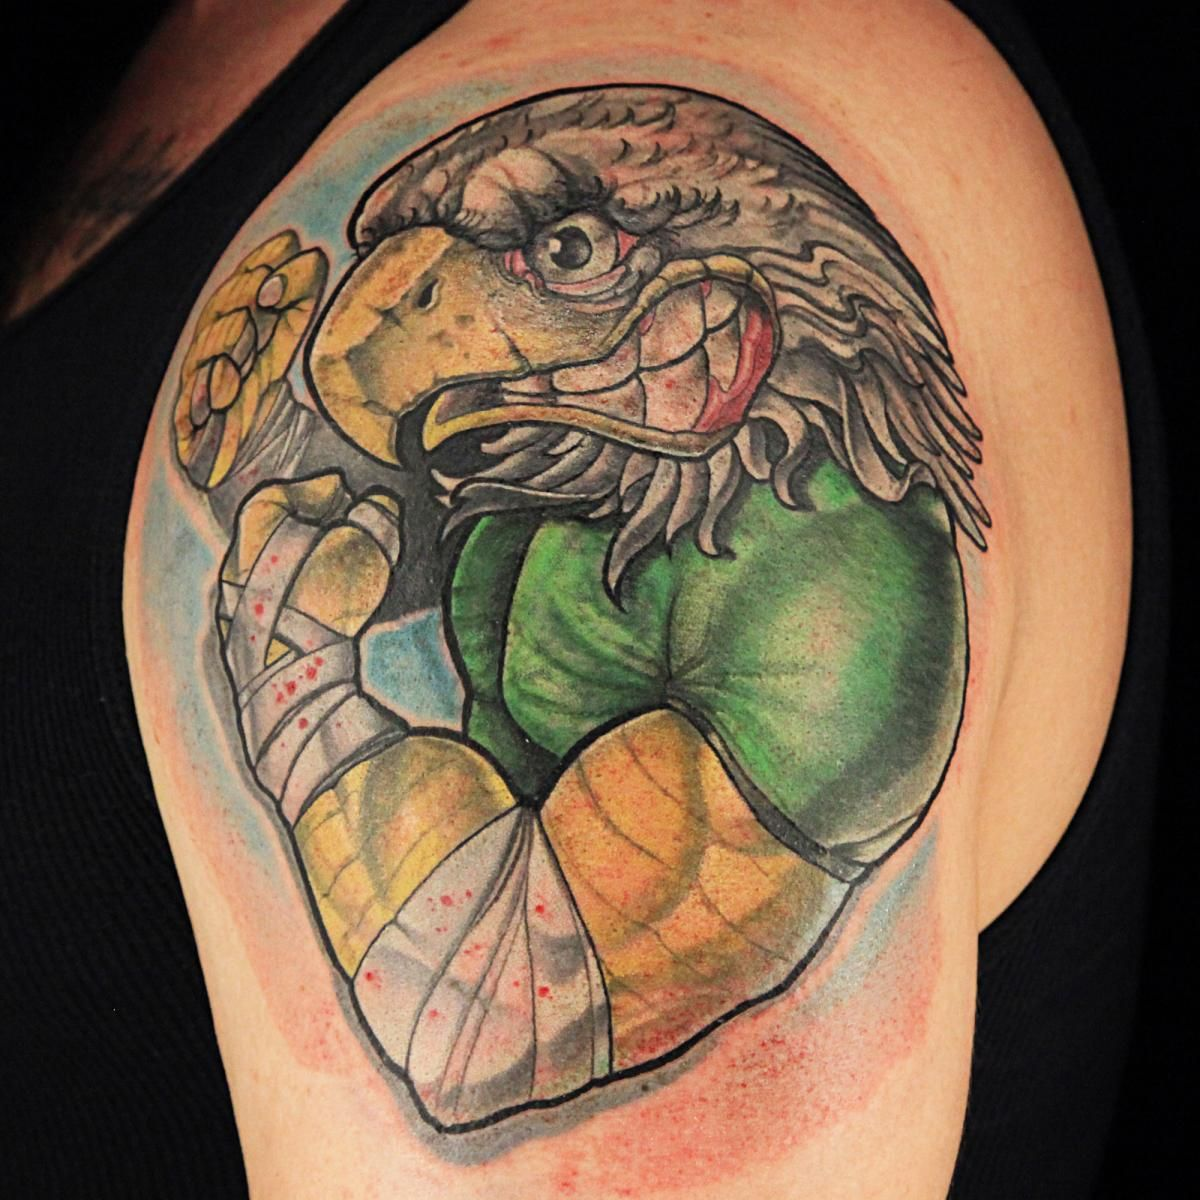 Ink master - craig foster | Tattoos: Permanent Ink | Tattoos, Cover ...